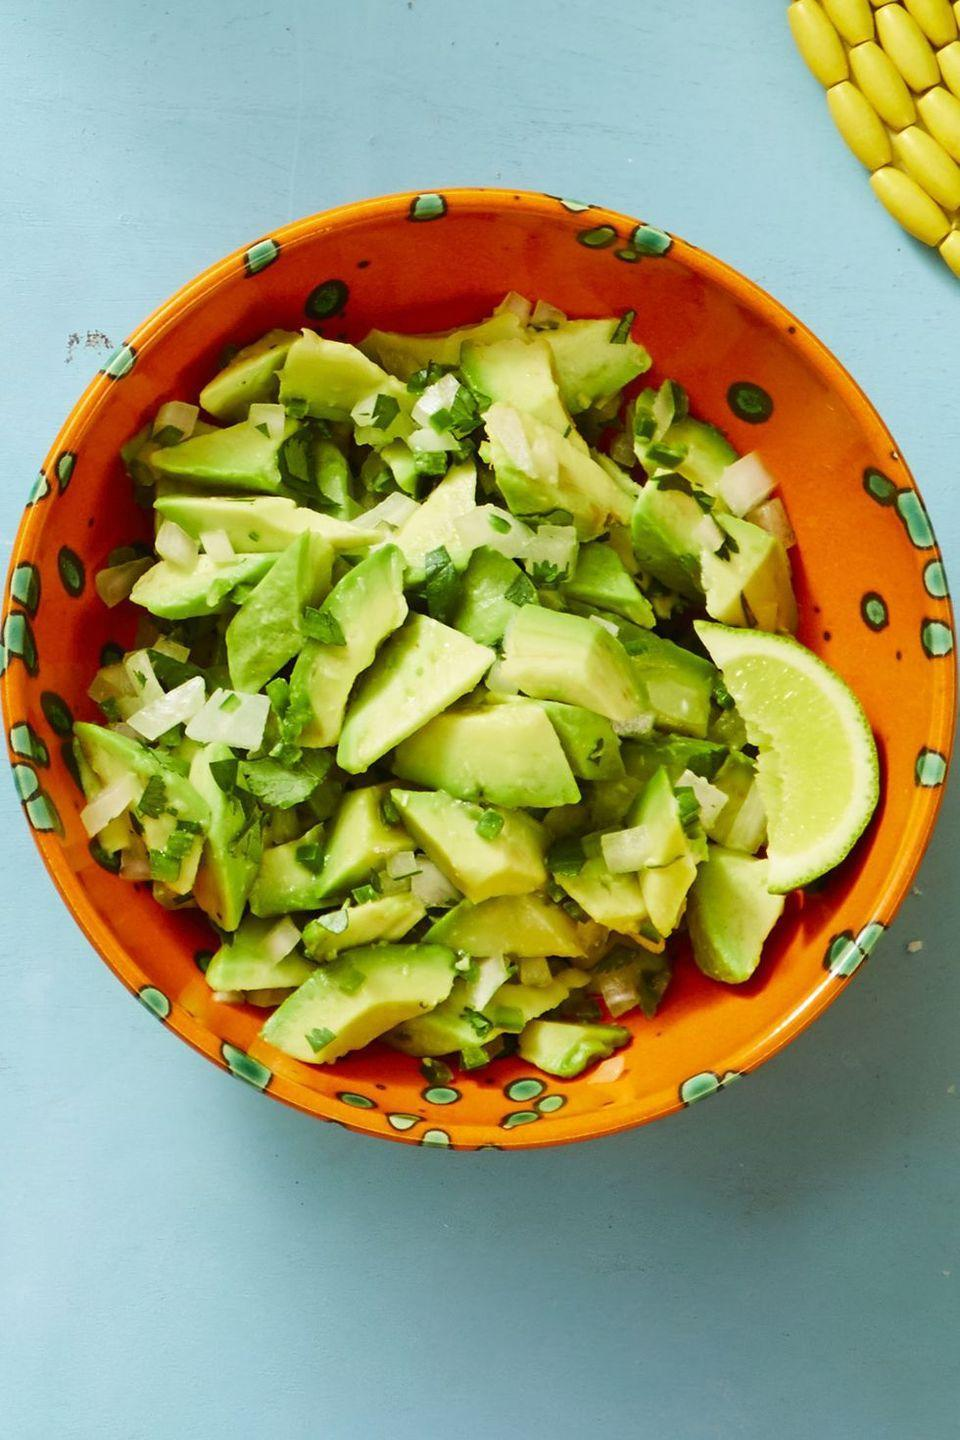 """<p>Creamy meets chunky in this zesty, spicy guacamole that's always a crowd-pleaser.</p><p><em><a href=""""https://www.goodhousekeeping.com/food-recipes/easy/a19864878/chunky-guacamole-recipe/"""" rel=""""nofollow noopener"""" target=""""_blank"""" data-ylk=""""slk:Get the recipe for Chunky Guacamole »"""" class=""""link rapid-noclick-resp"""">Get the recipe for Chunky Guacamole »</a></em></p>"""